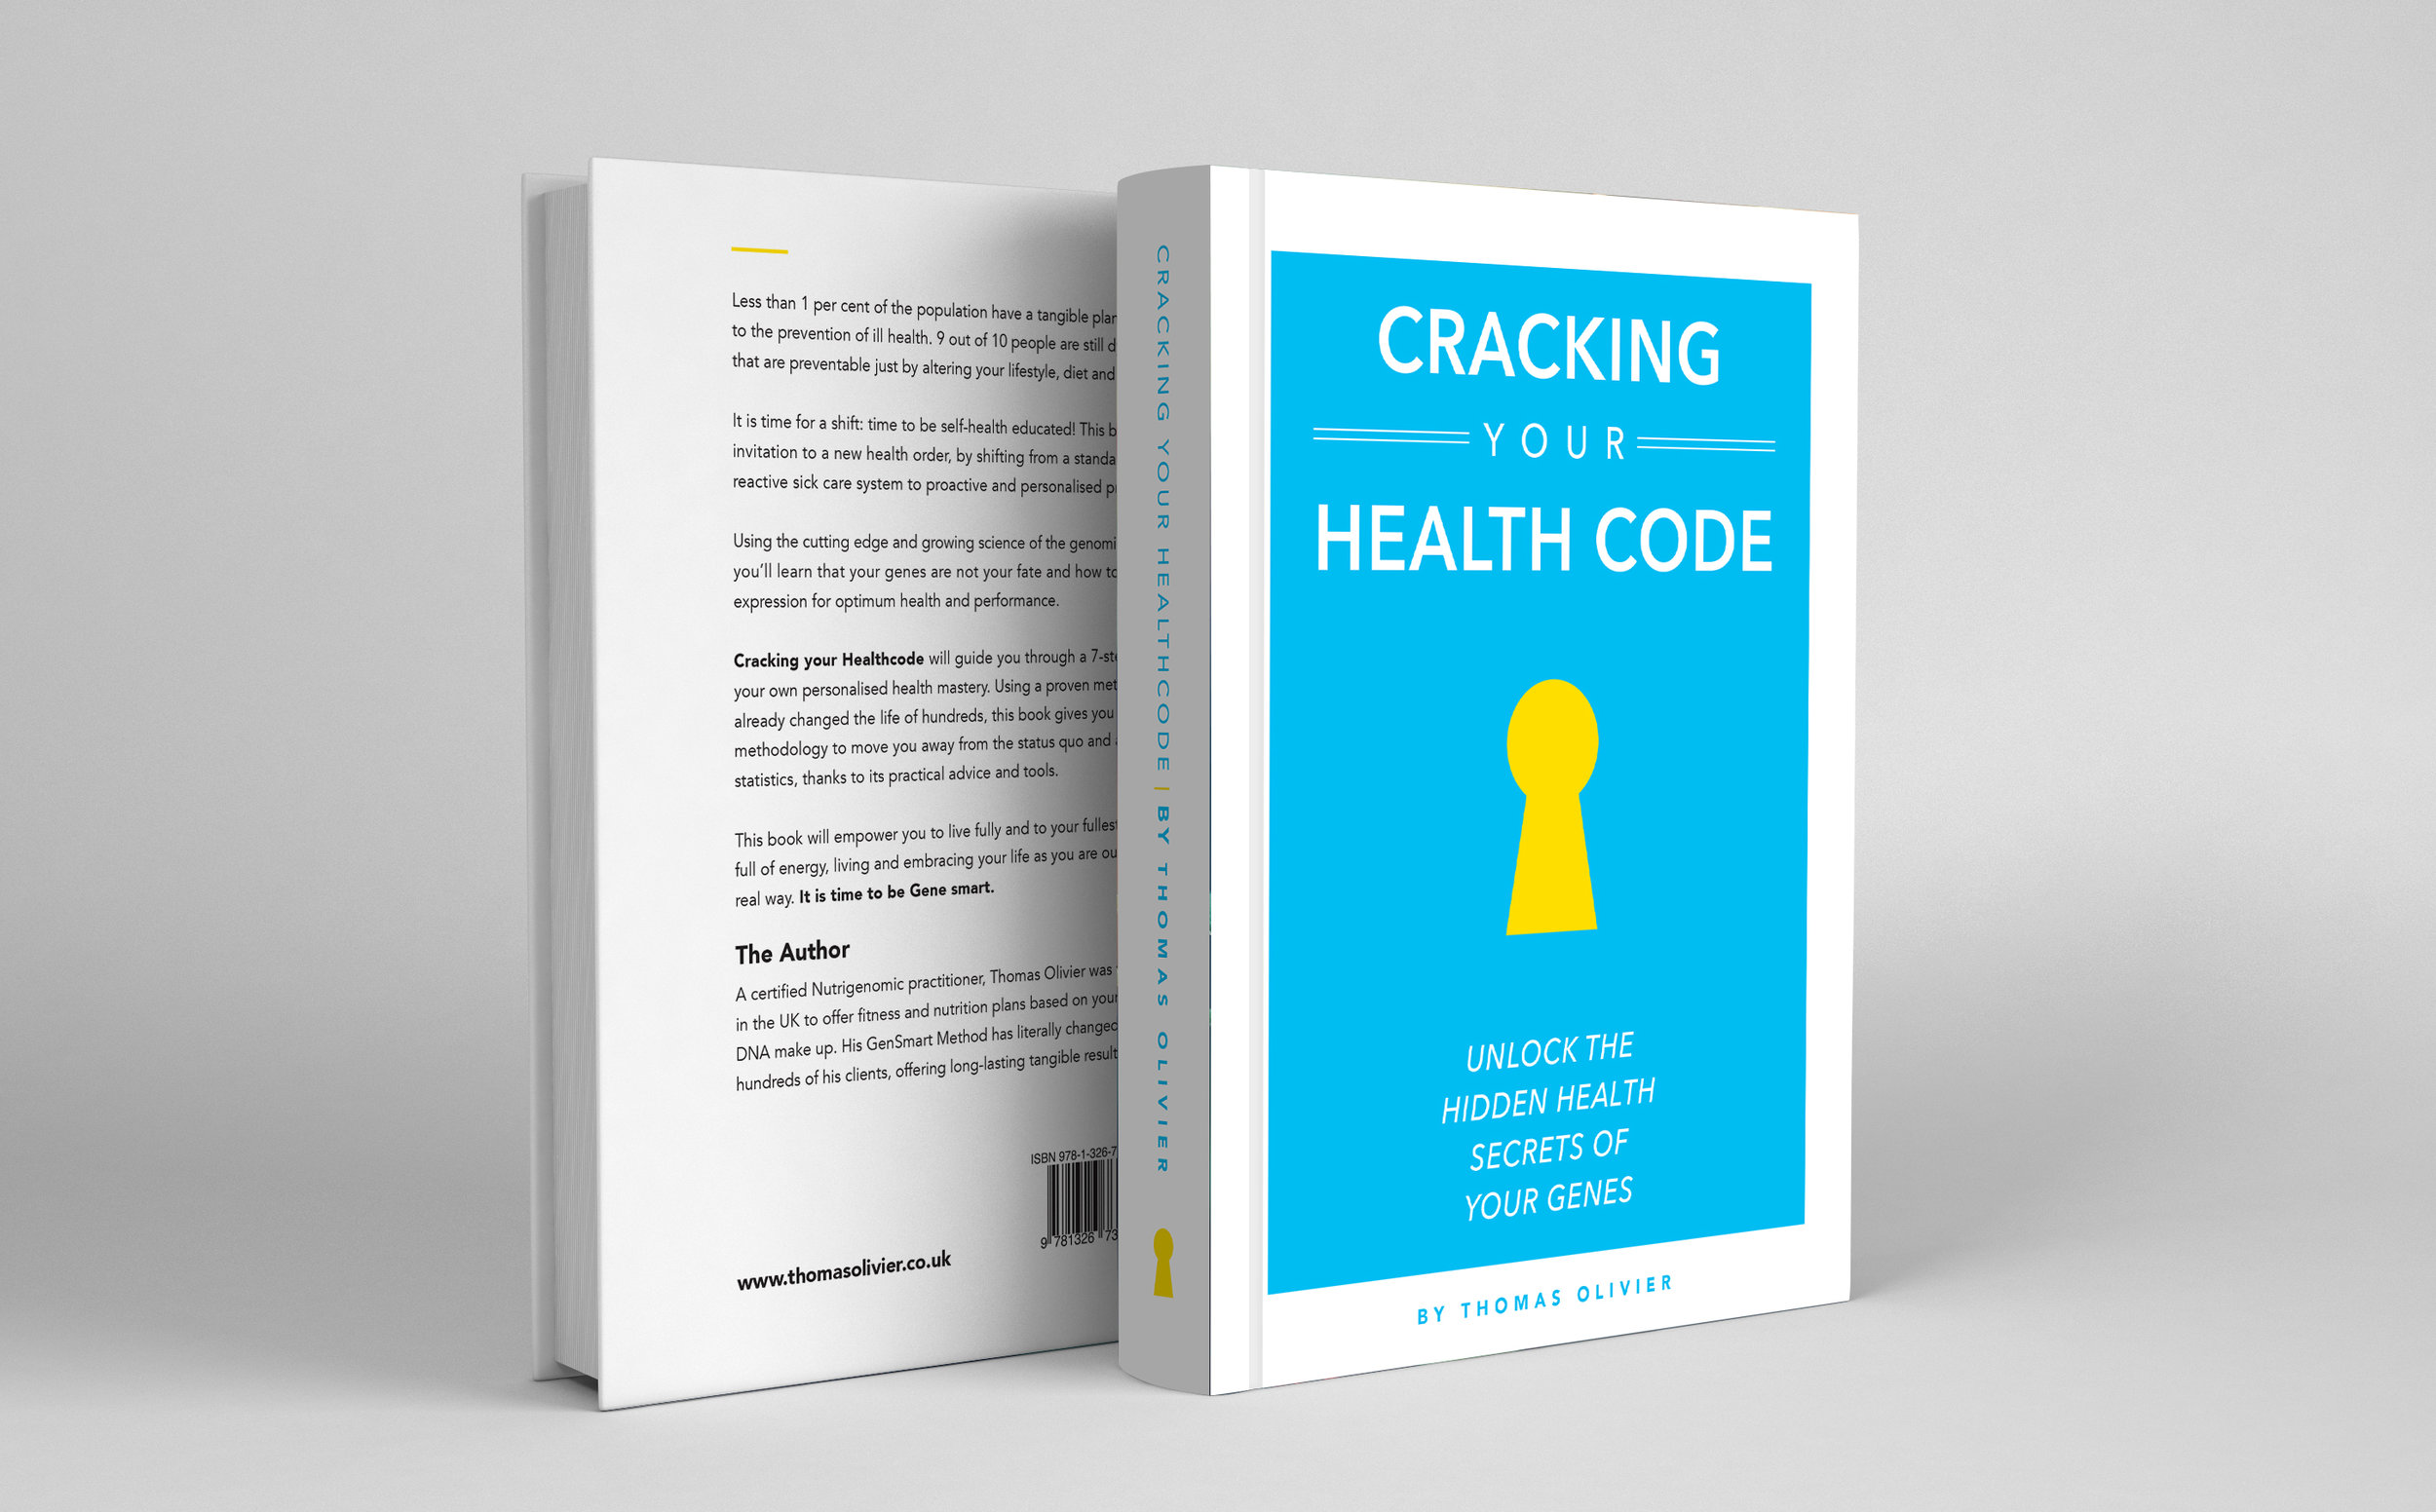 Here is a freebie! - Download Cracking your health code, the book that inspired thousand to personalised health optimisation!Hard copy available on Amazon